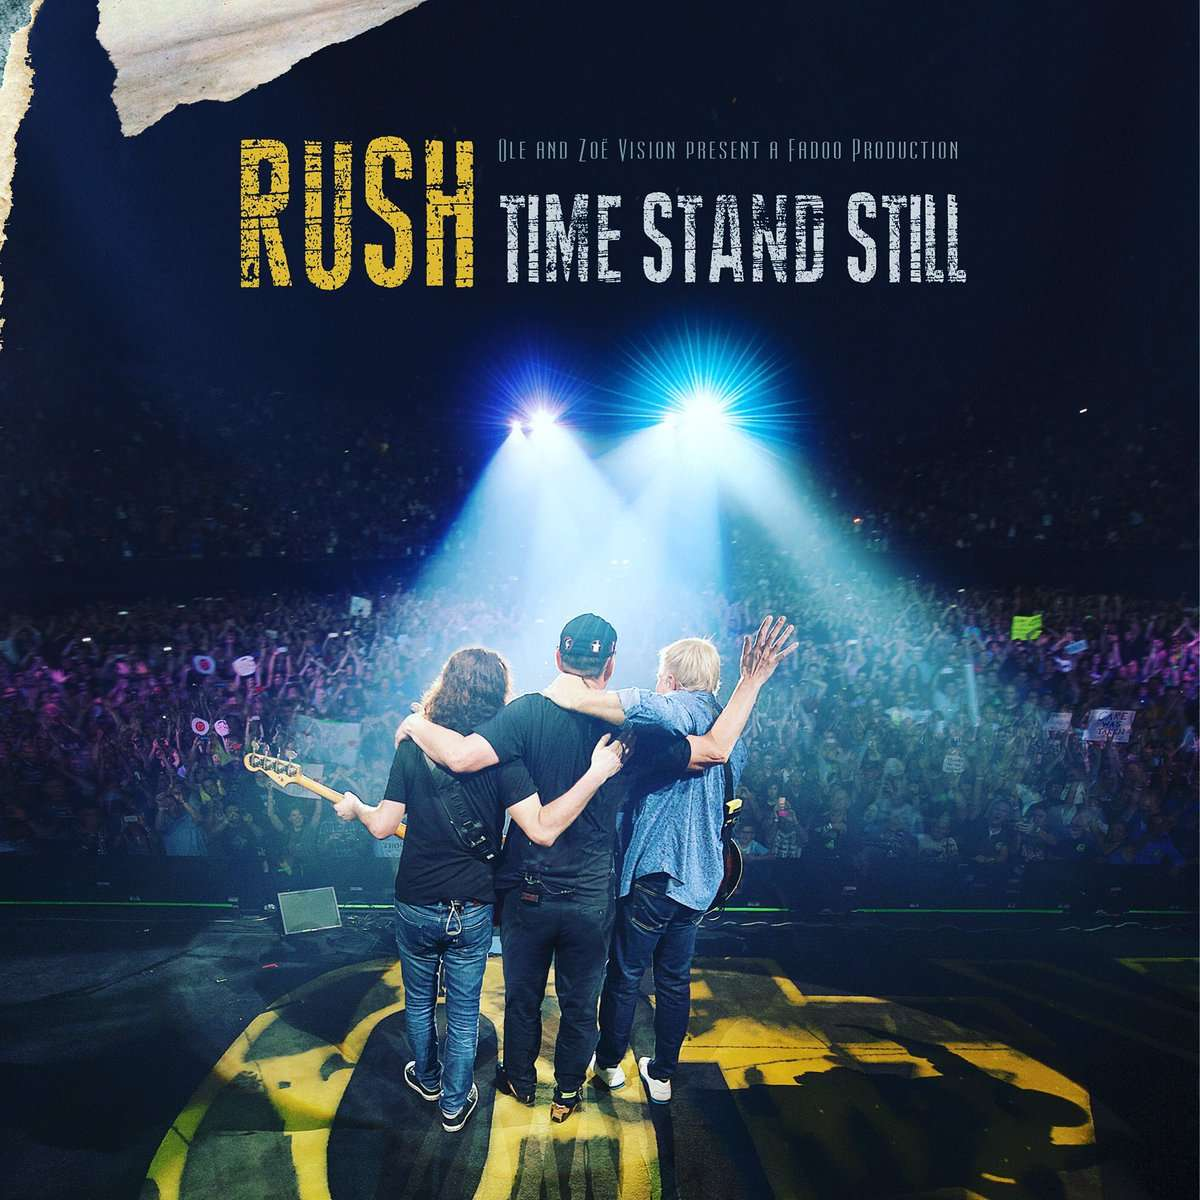 Rush Time Stand Still